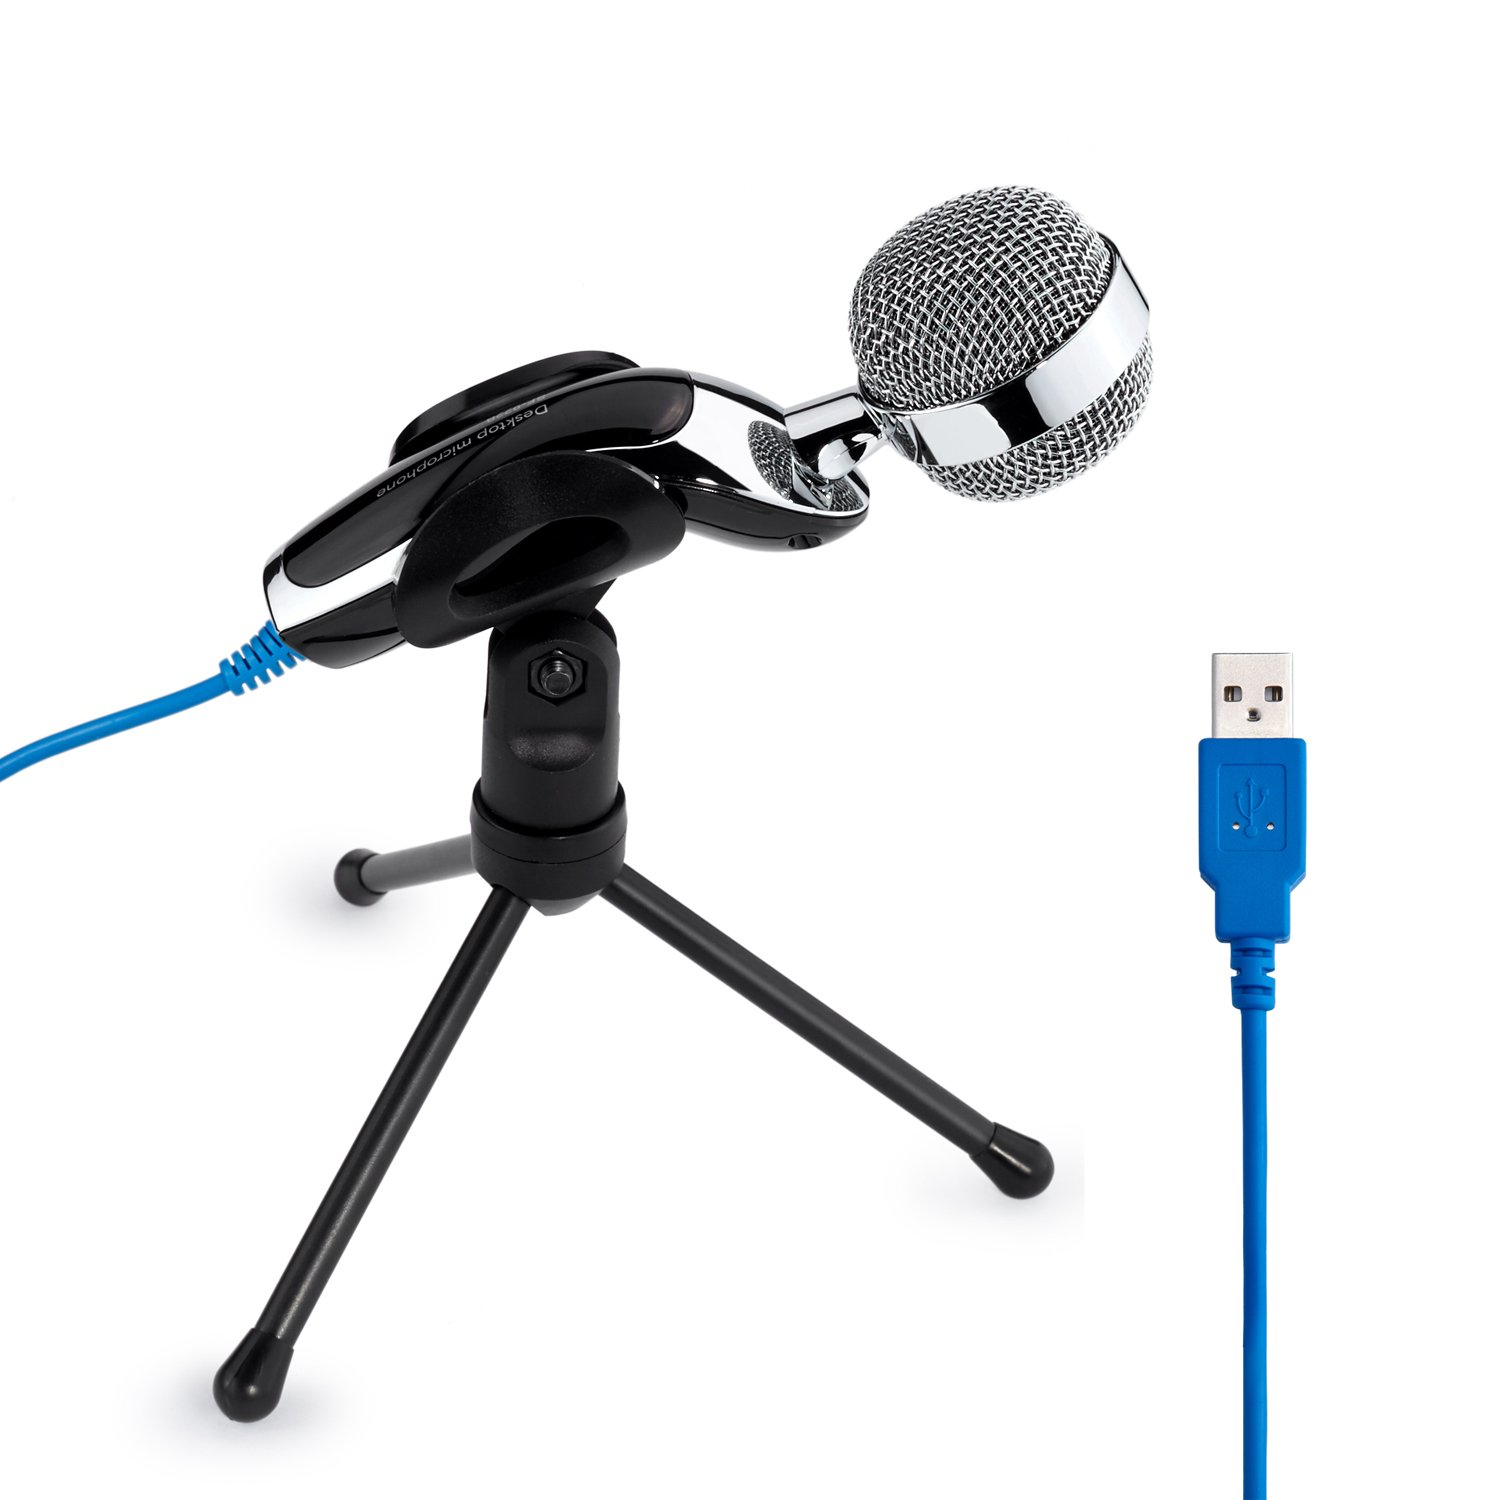 Tonor® USB Clear Digital Sound & Professional Condenser Sound Microphone with Stand for Skype PC Mac Laptop Recording nb 35 rotational professional recording microphone stand holder black white